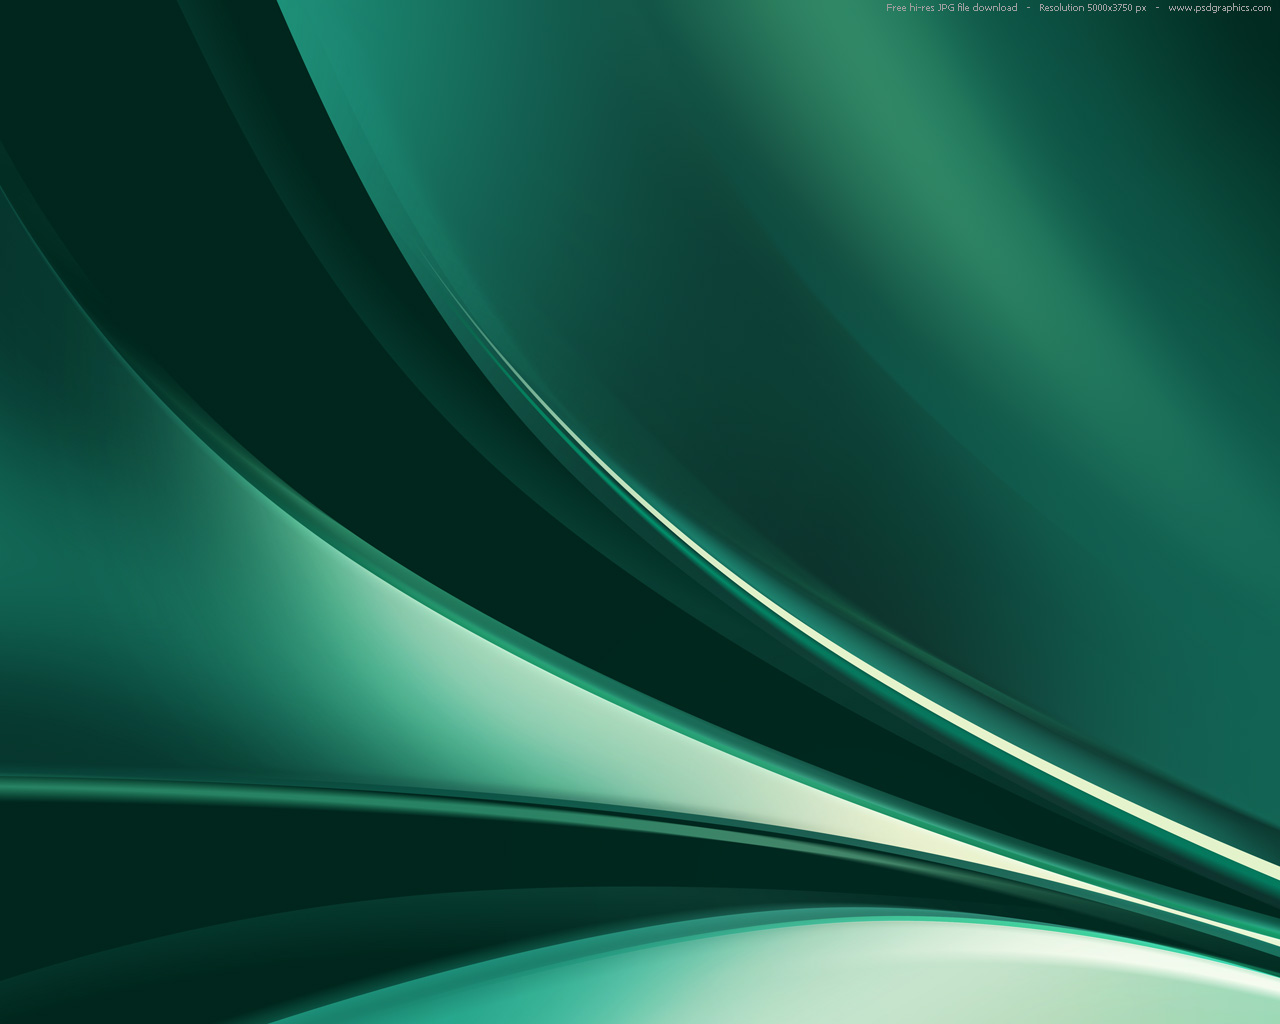 green abstract hd wallpapers � wallpaper202